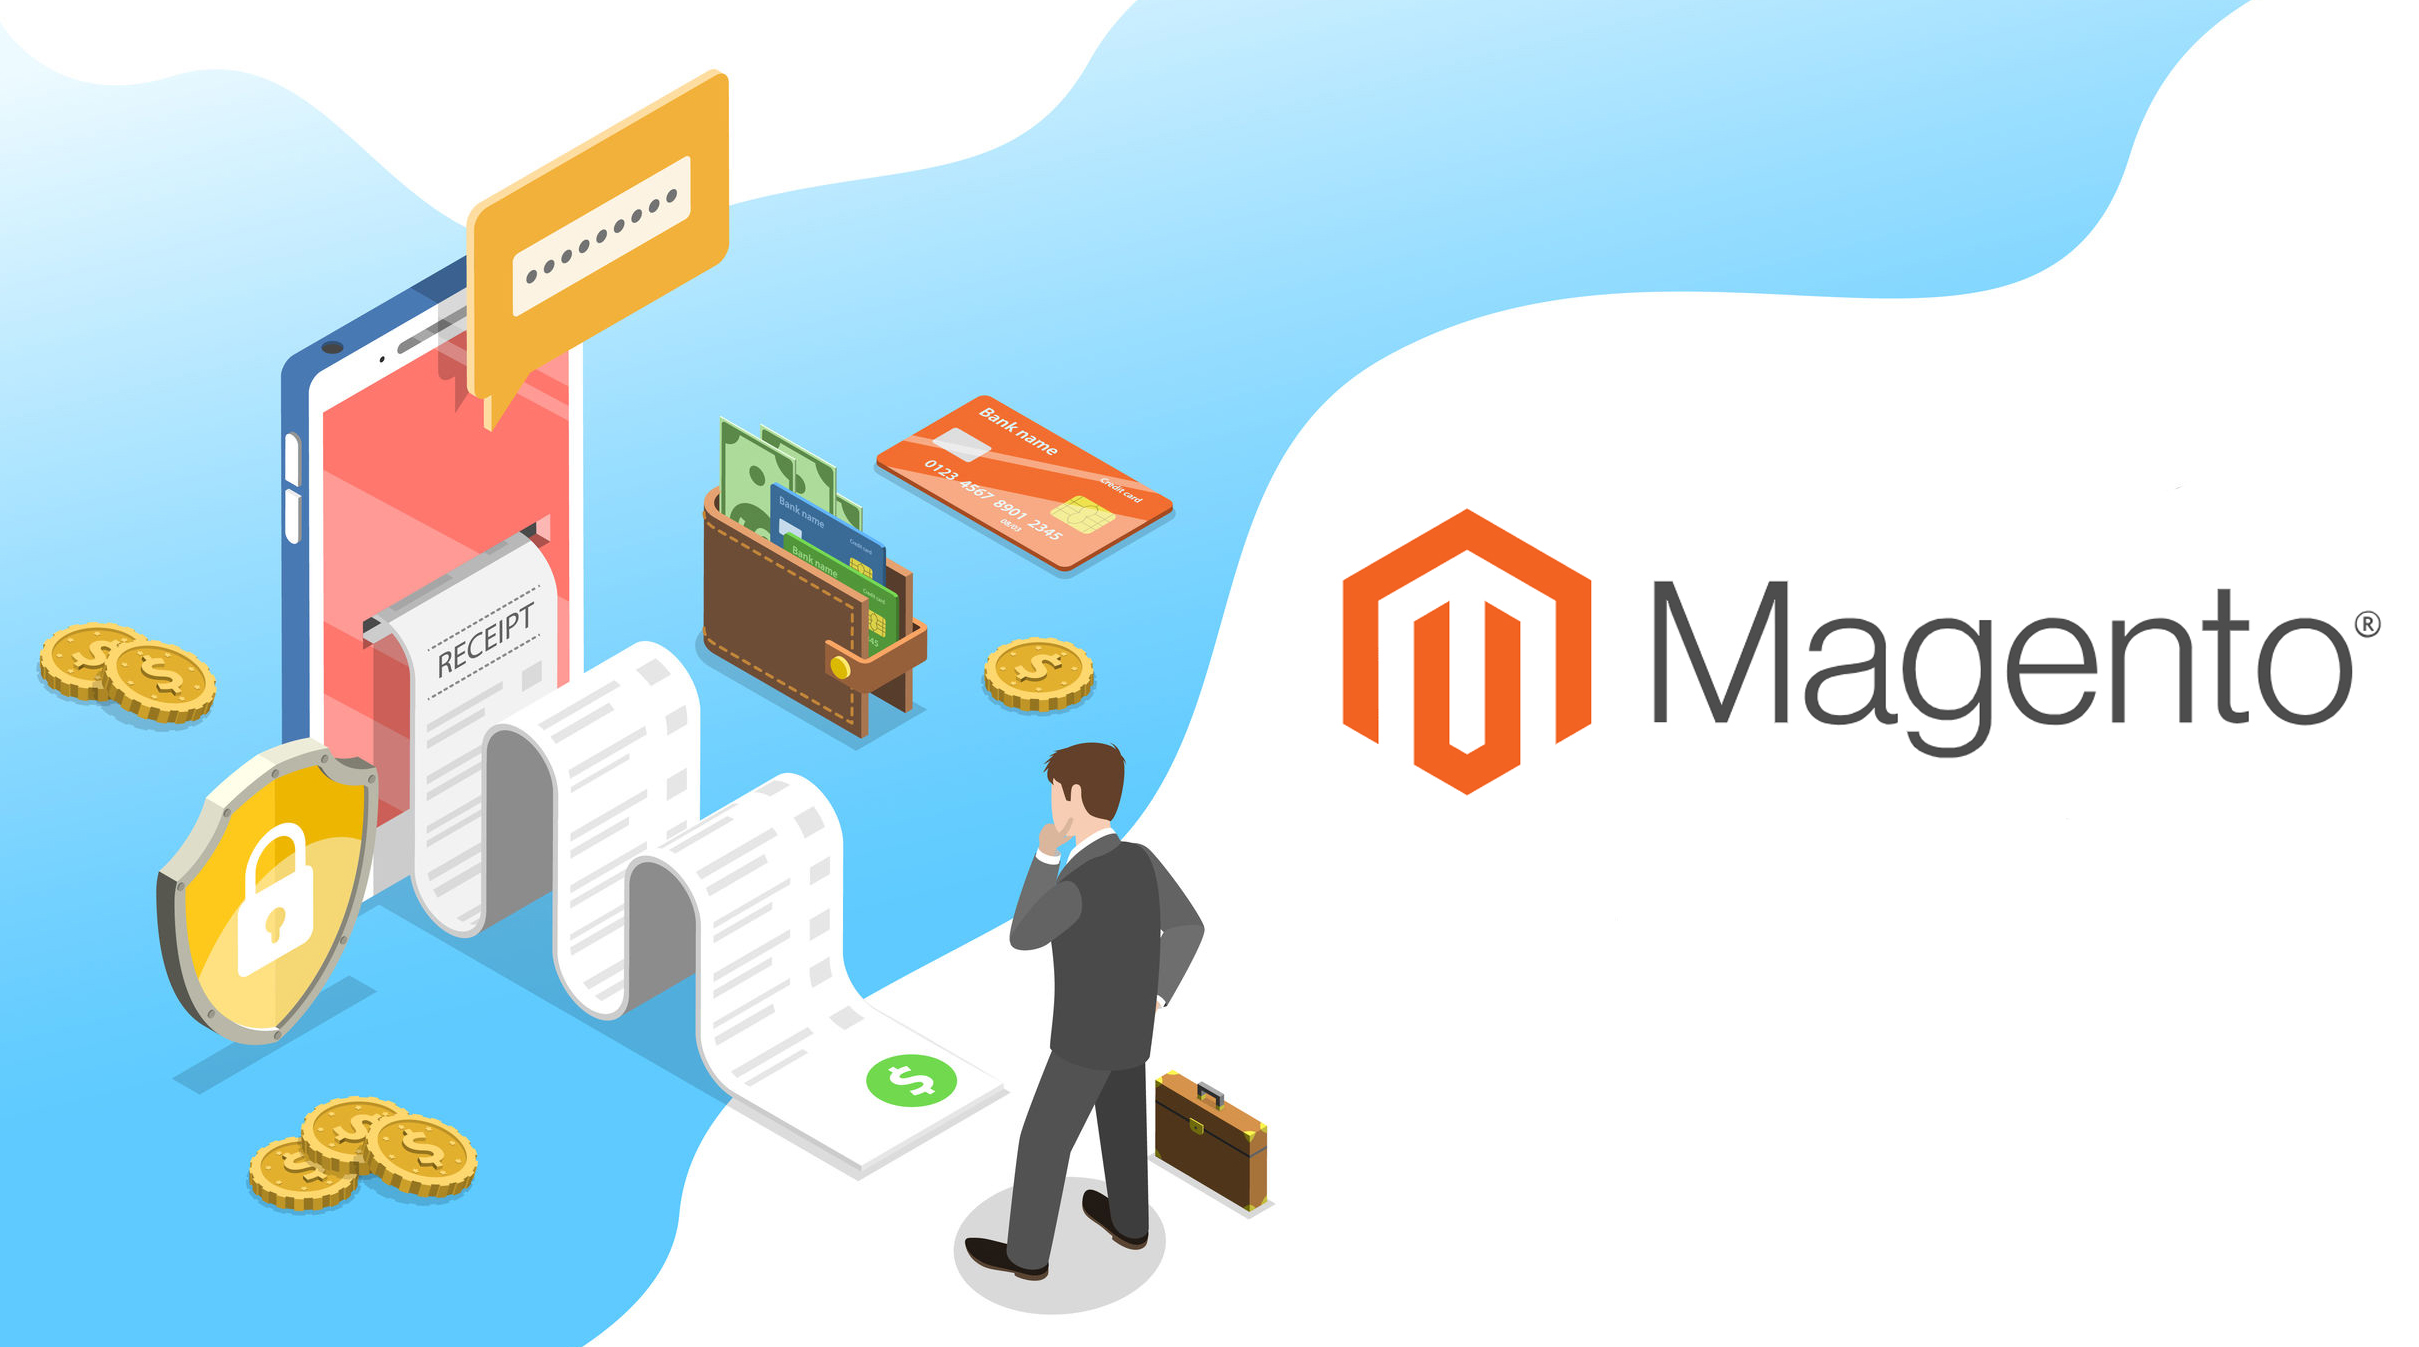 What Is the Cost of Building and Operating a Magento eCommerce Store?